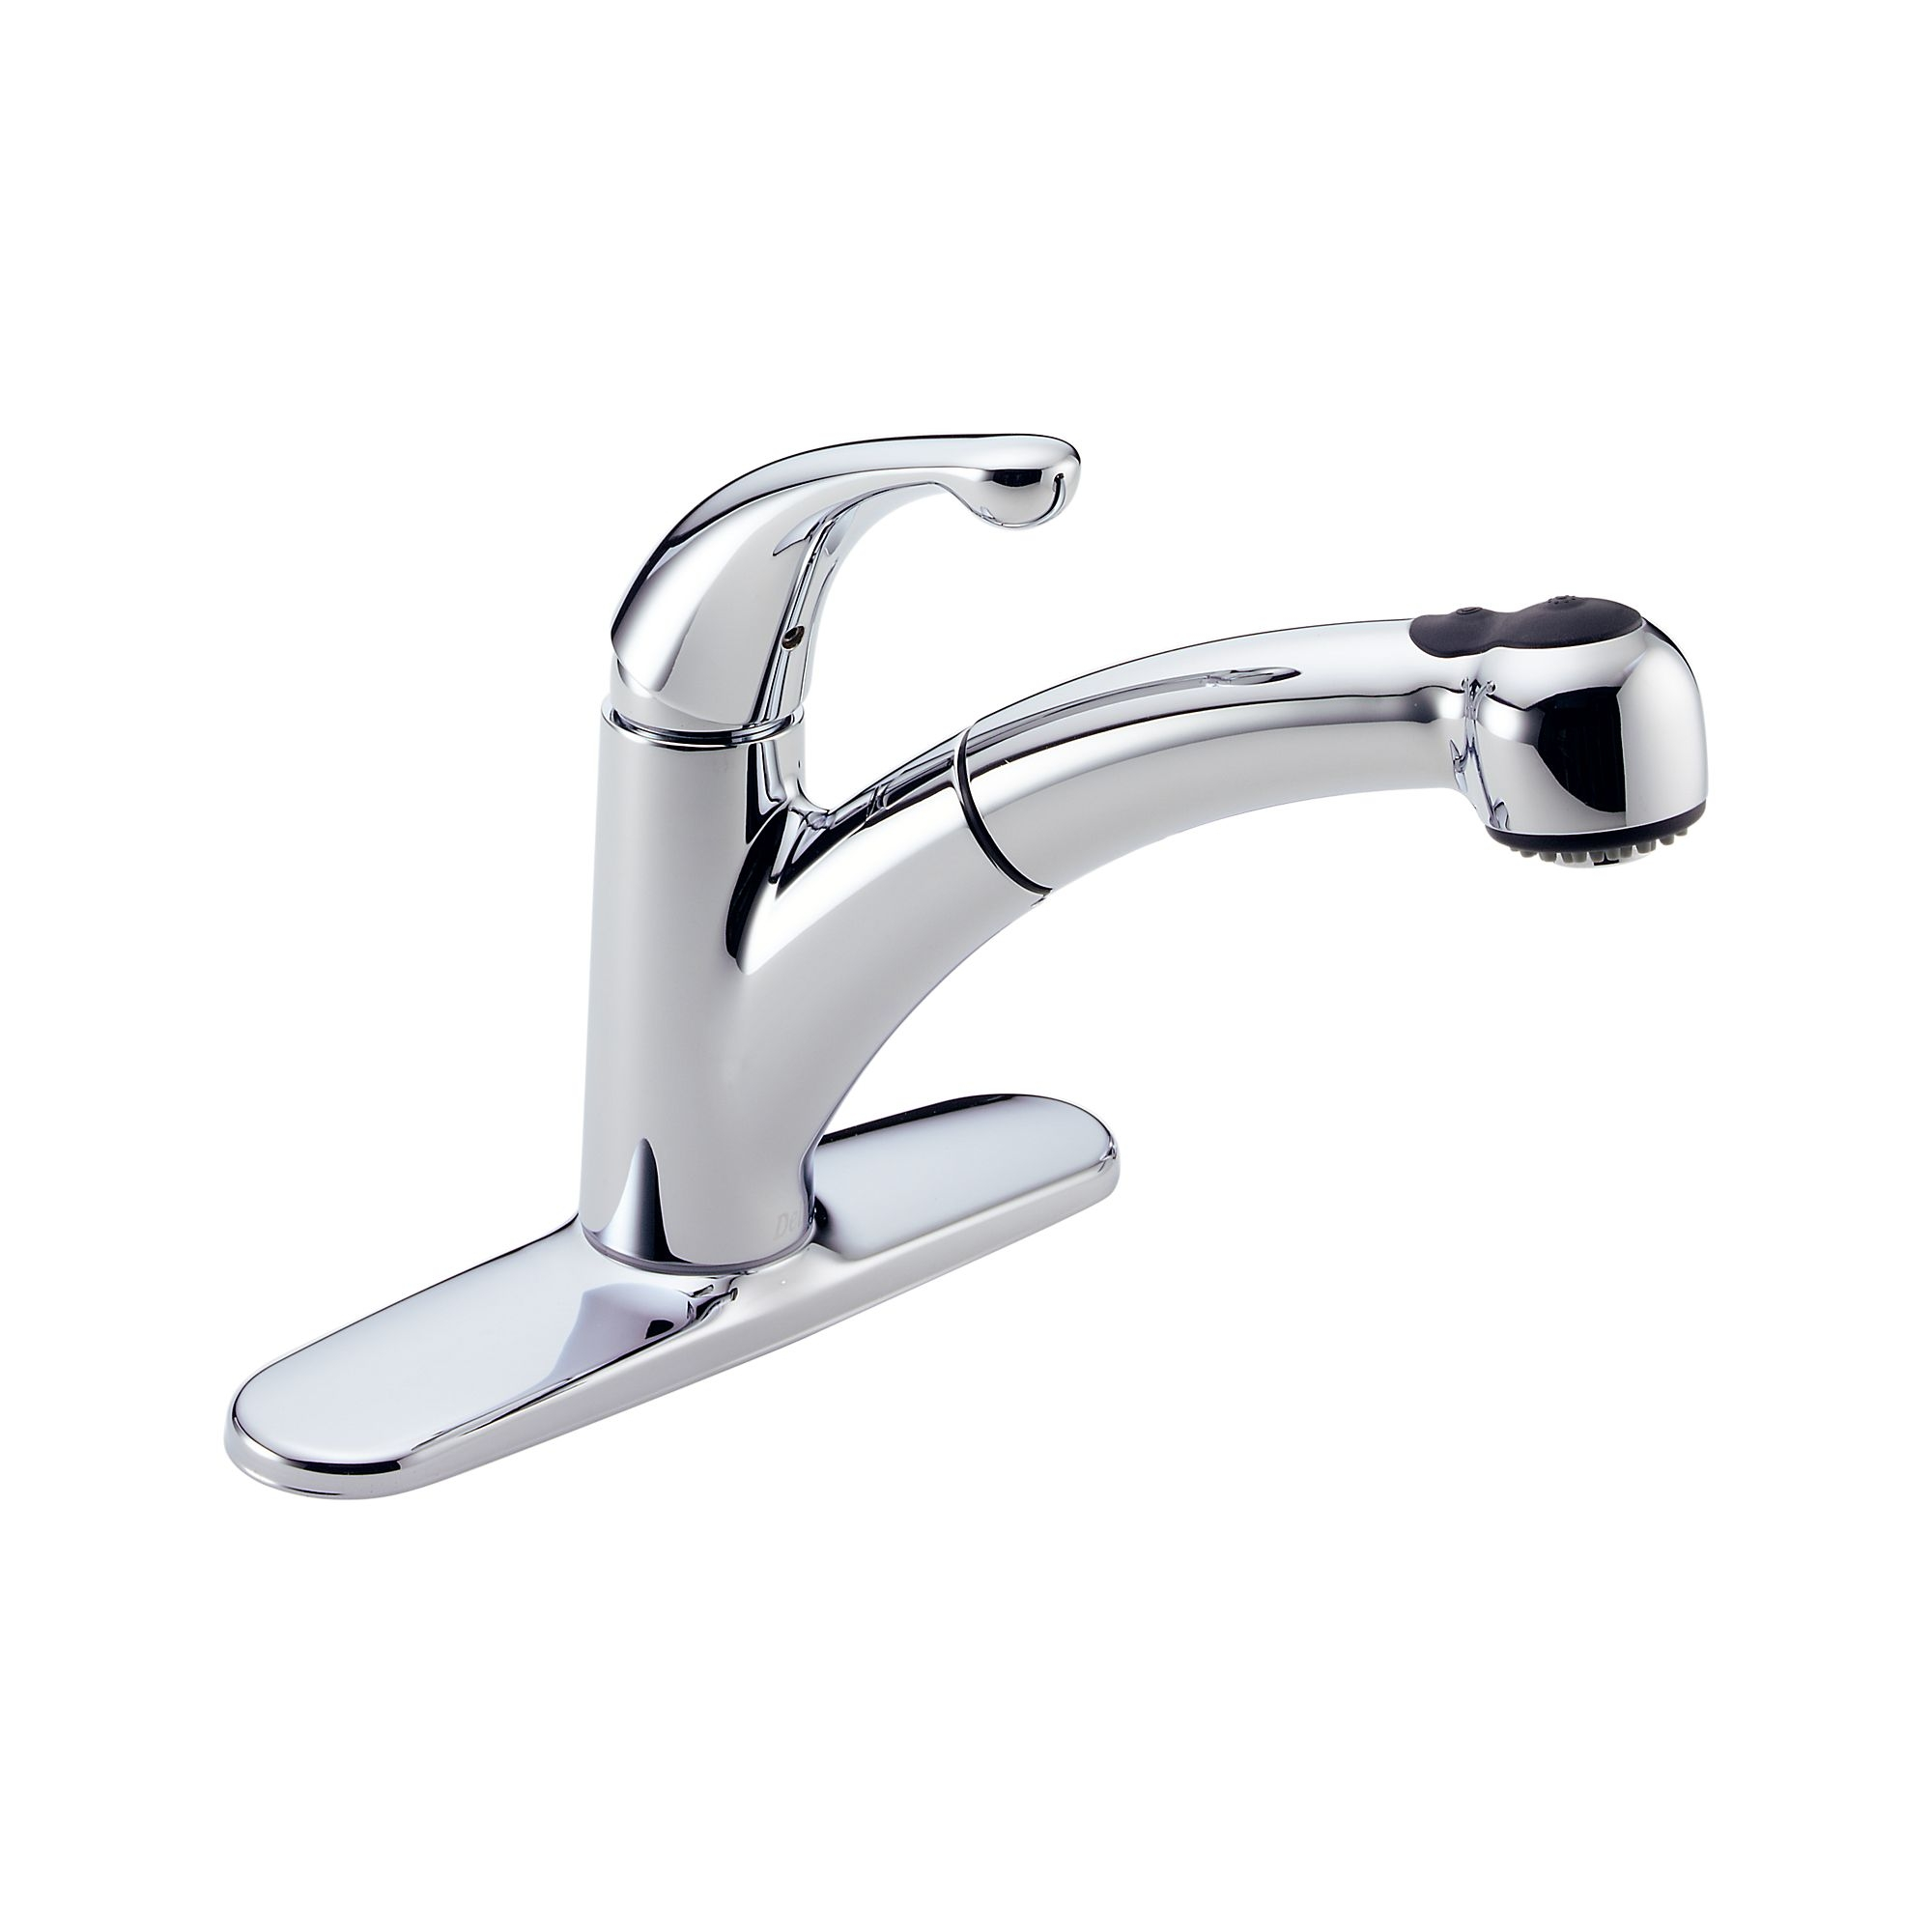 Ideas, pfister parisa 1 handle pull out kitchen faucet pfister parisa 1 handle pull out kitchen faucet discontinued delta kitchen faucets gramp 2000 x 2000  .